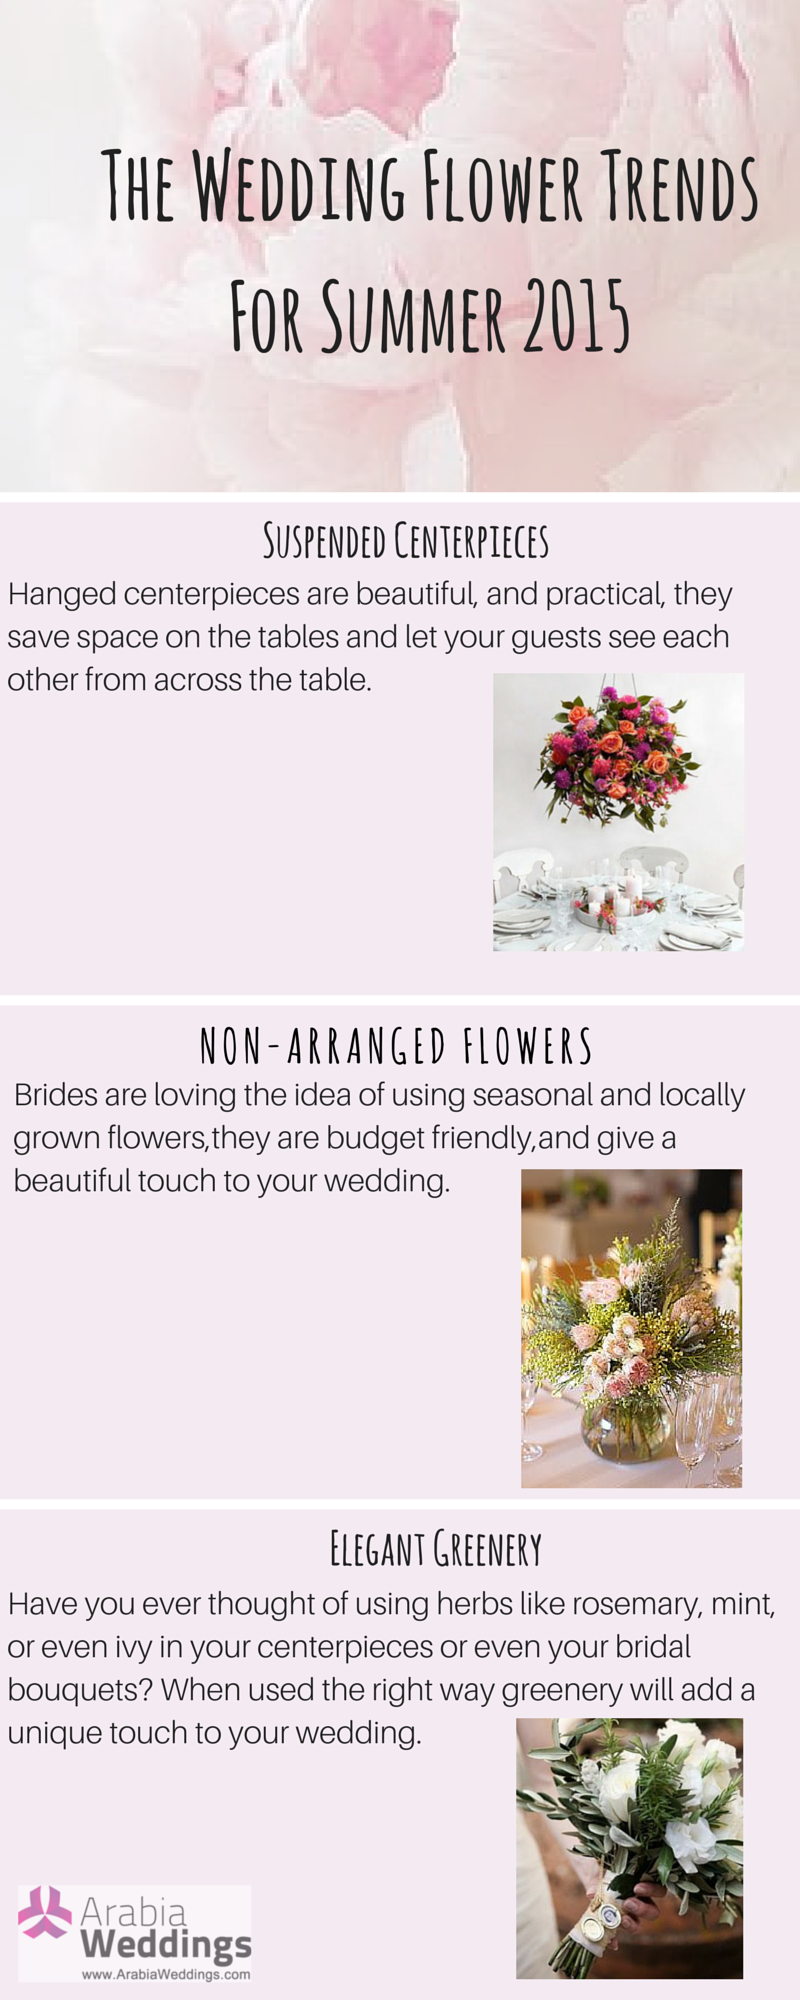 The Latest Flower Trends for Summer 2015 (Infograph) - Arabia Weddings